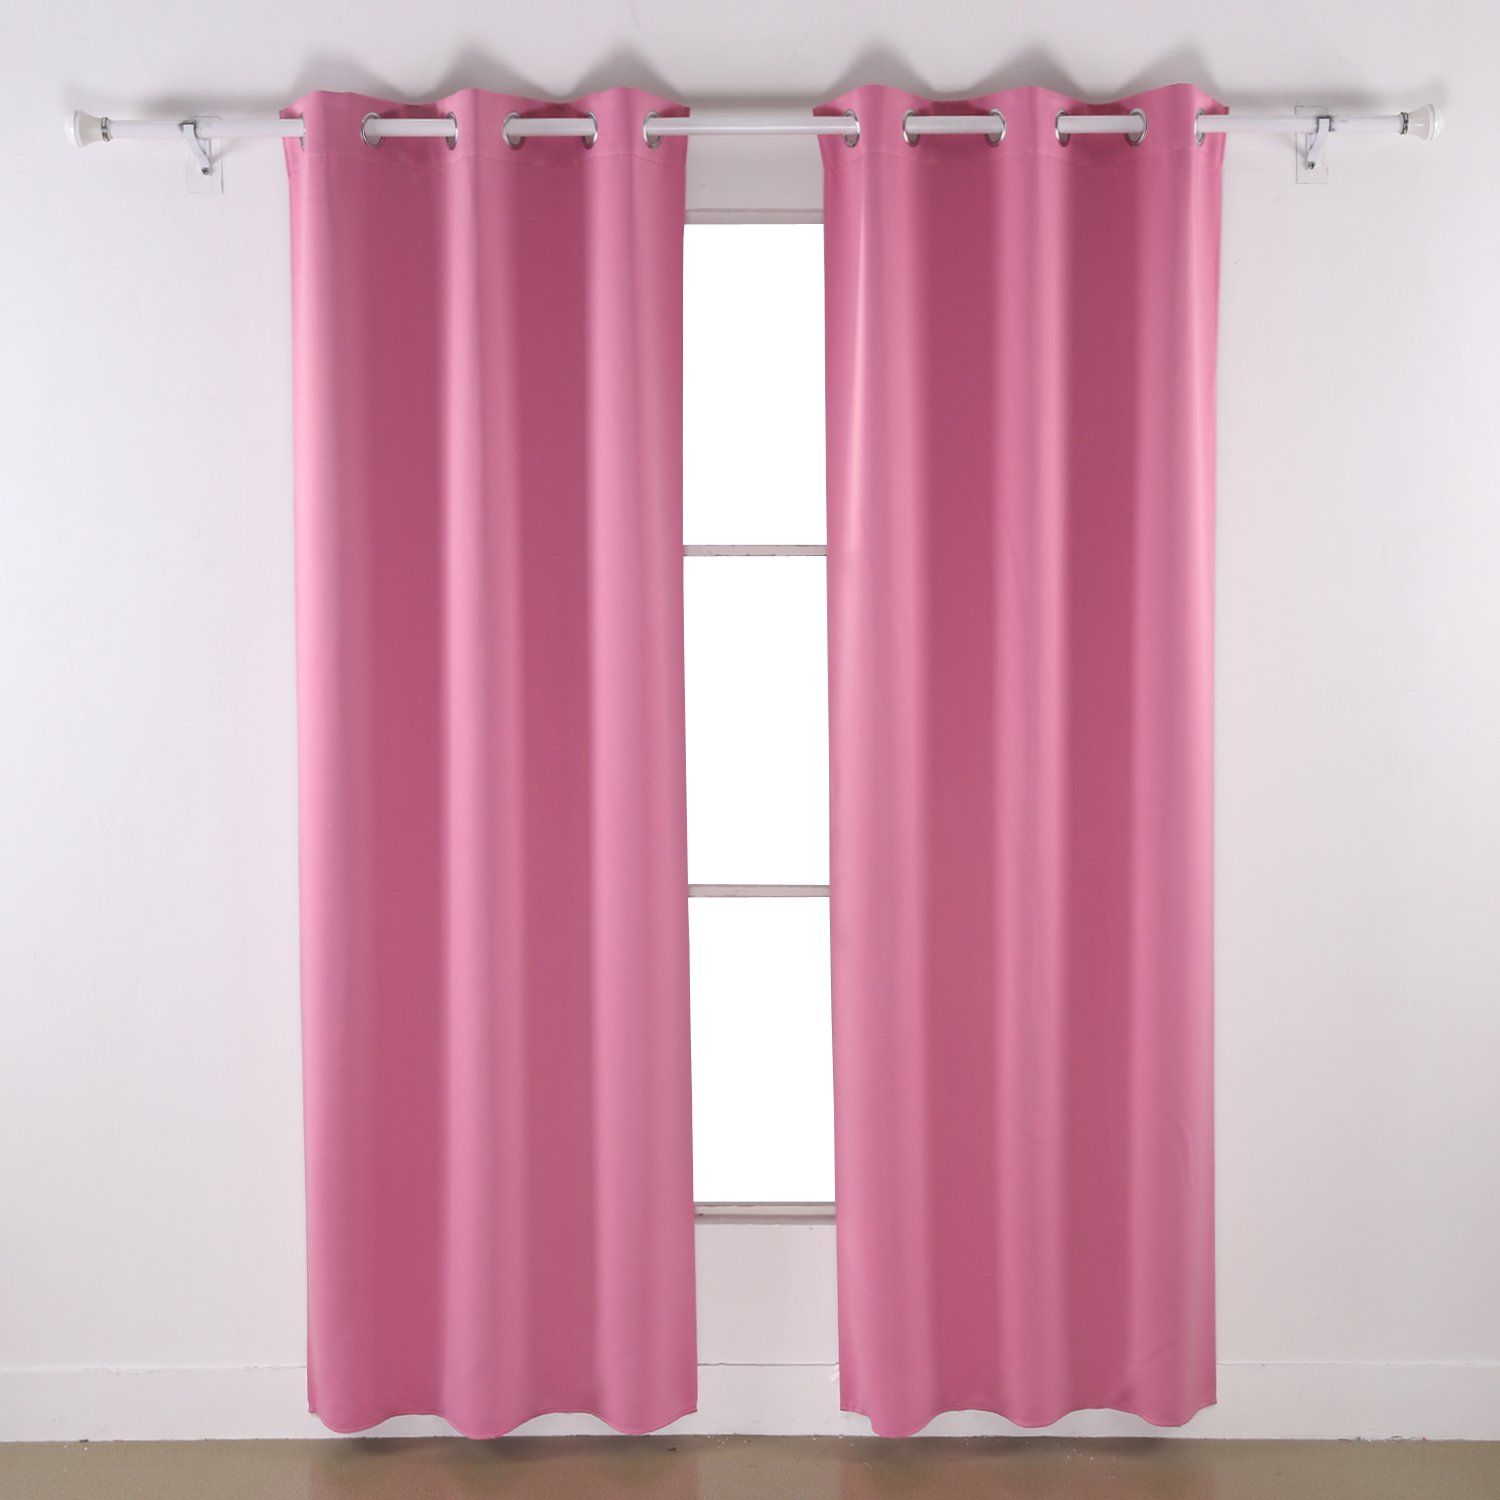 Deconovo Room Darkening Thermal Insulated Blackout Grommet Window Curtain Panel for Bedroom, Pink